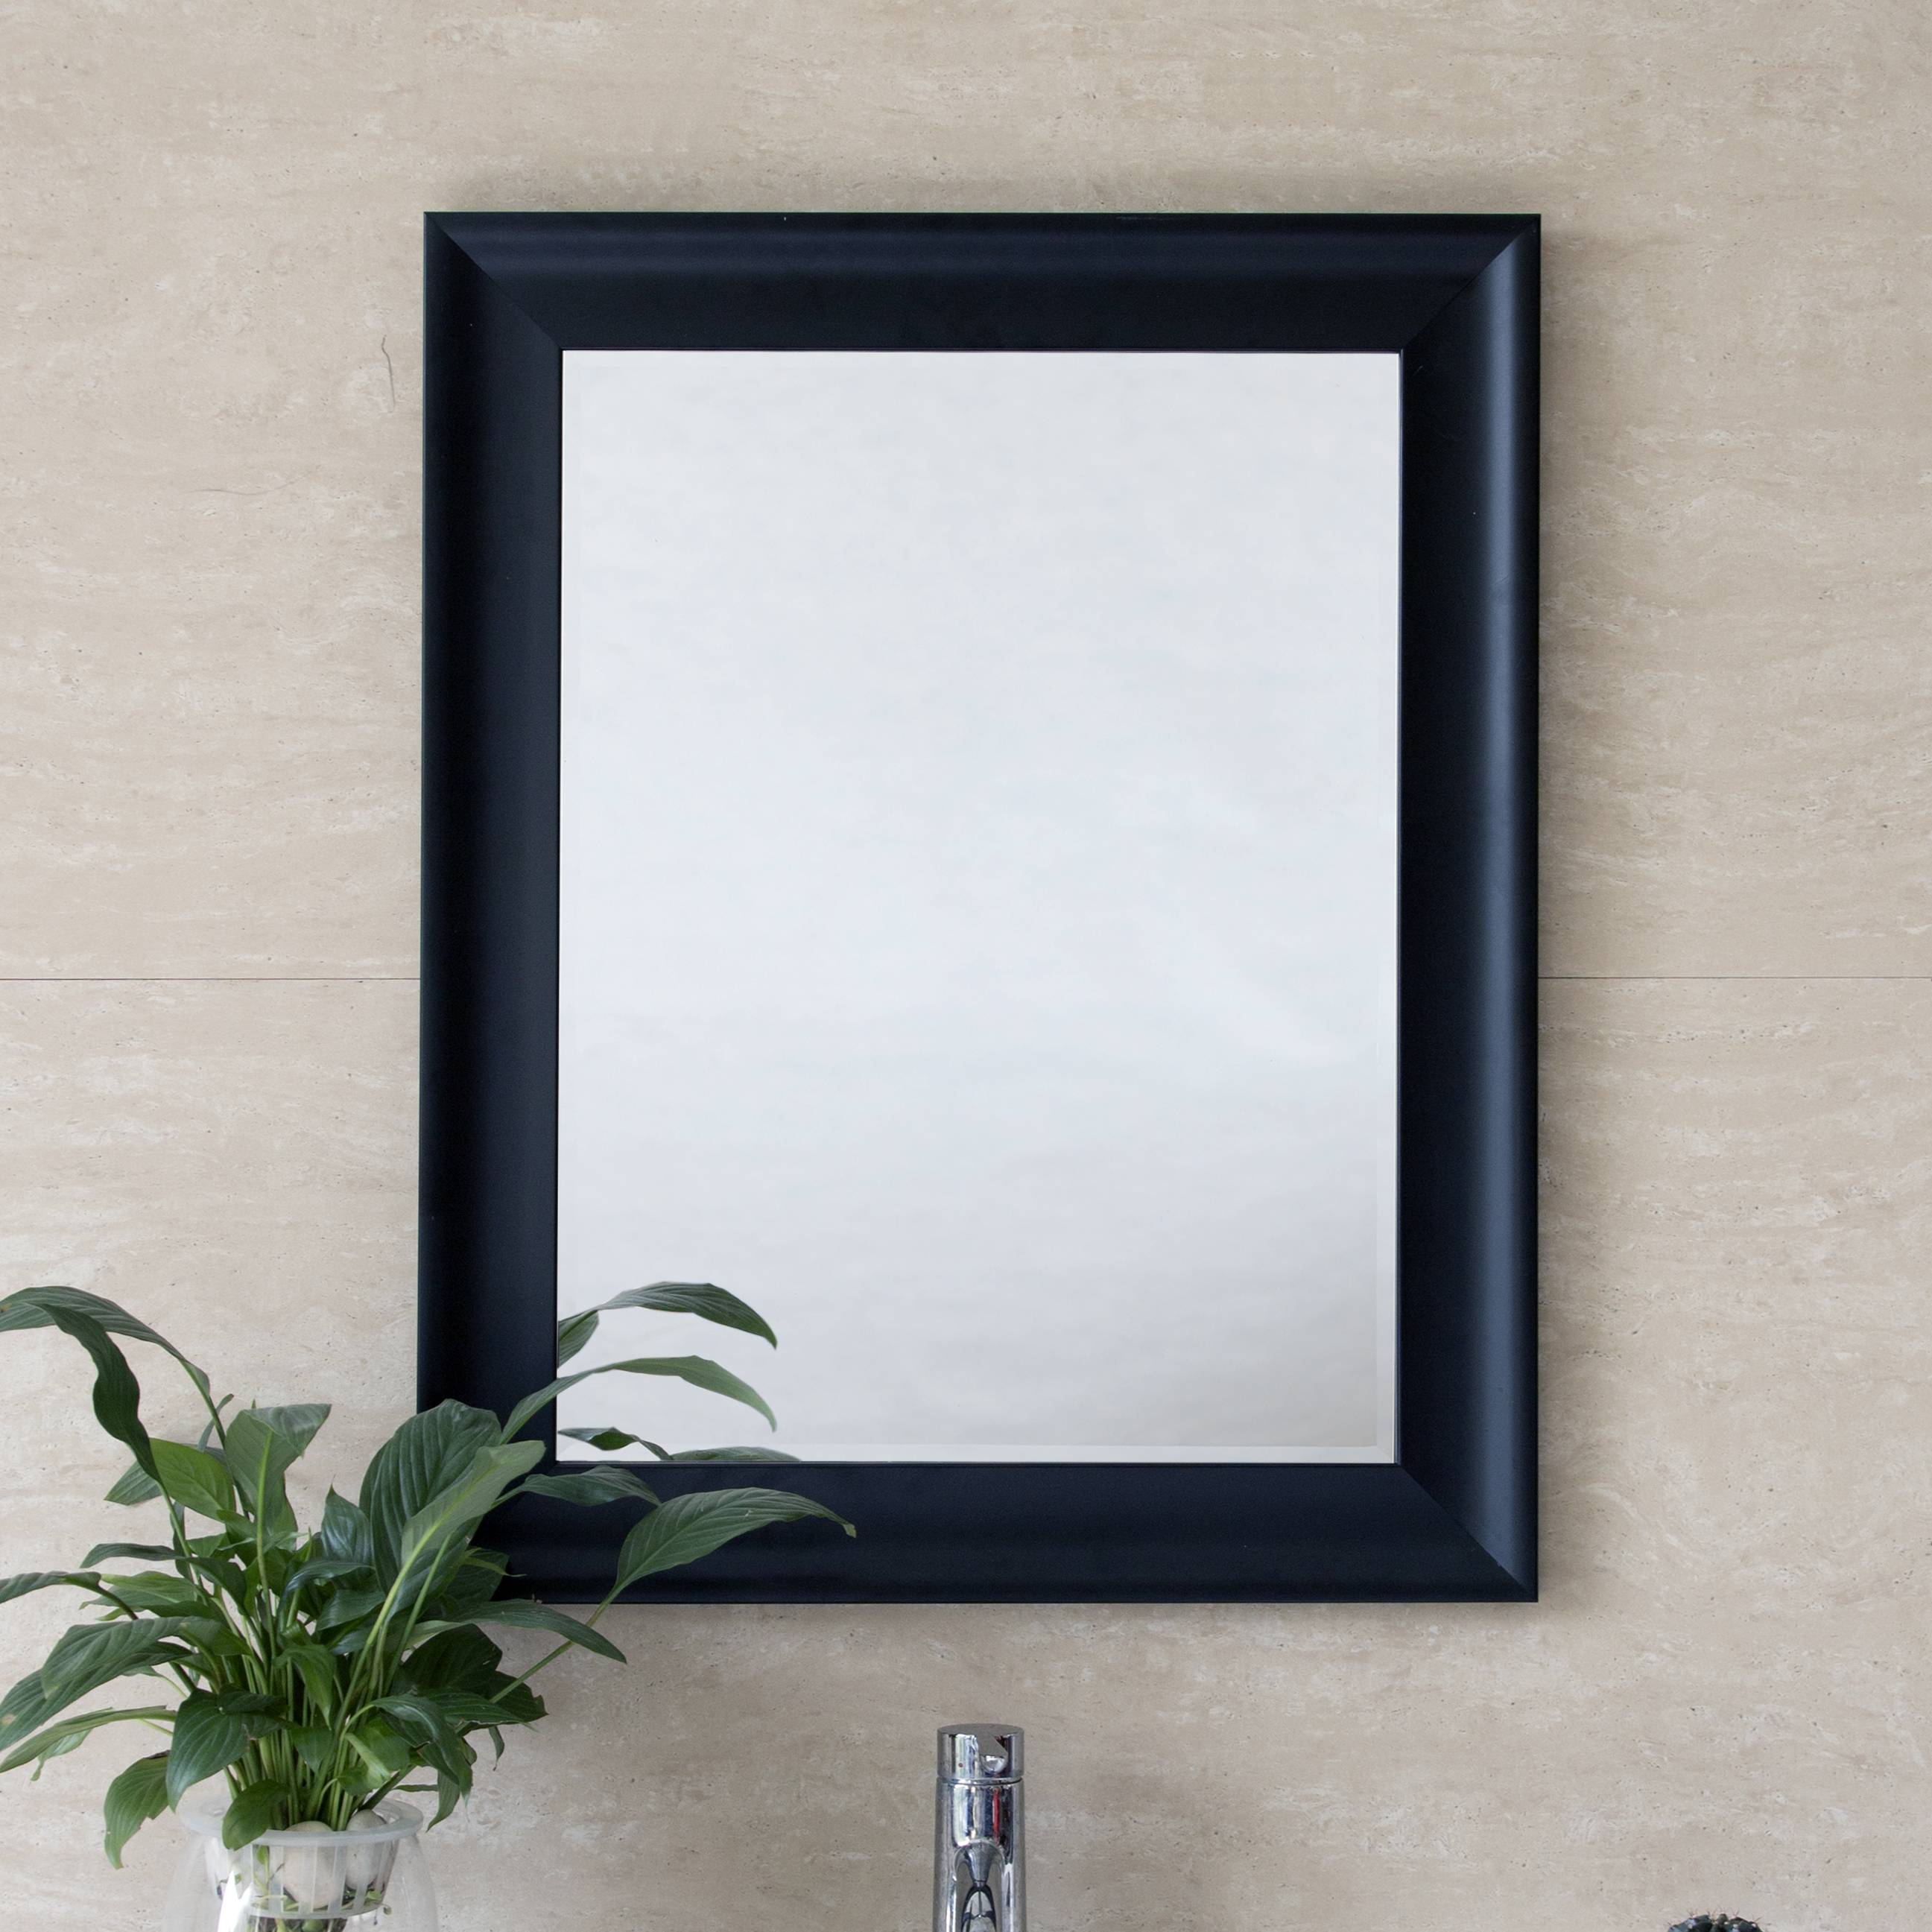 Black Modern Wall Mirror 1824 1